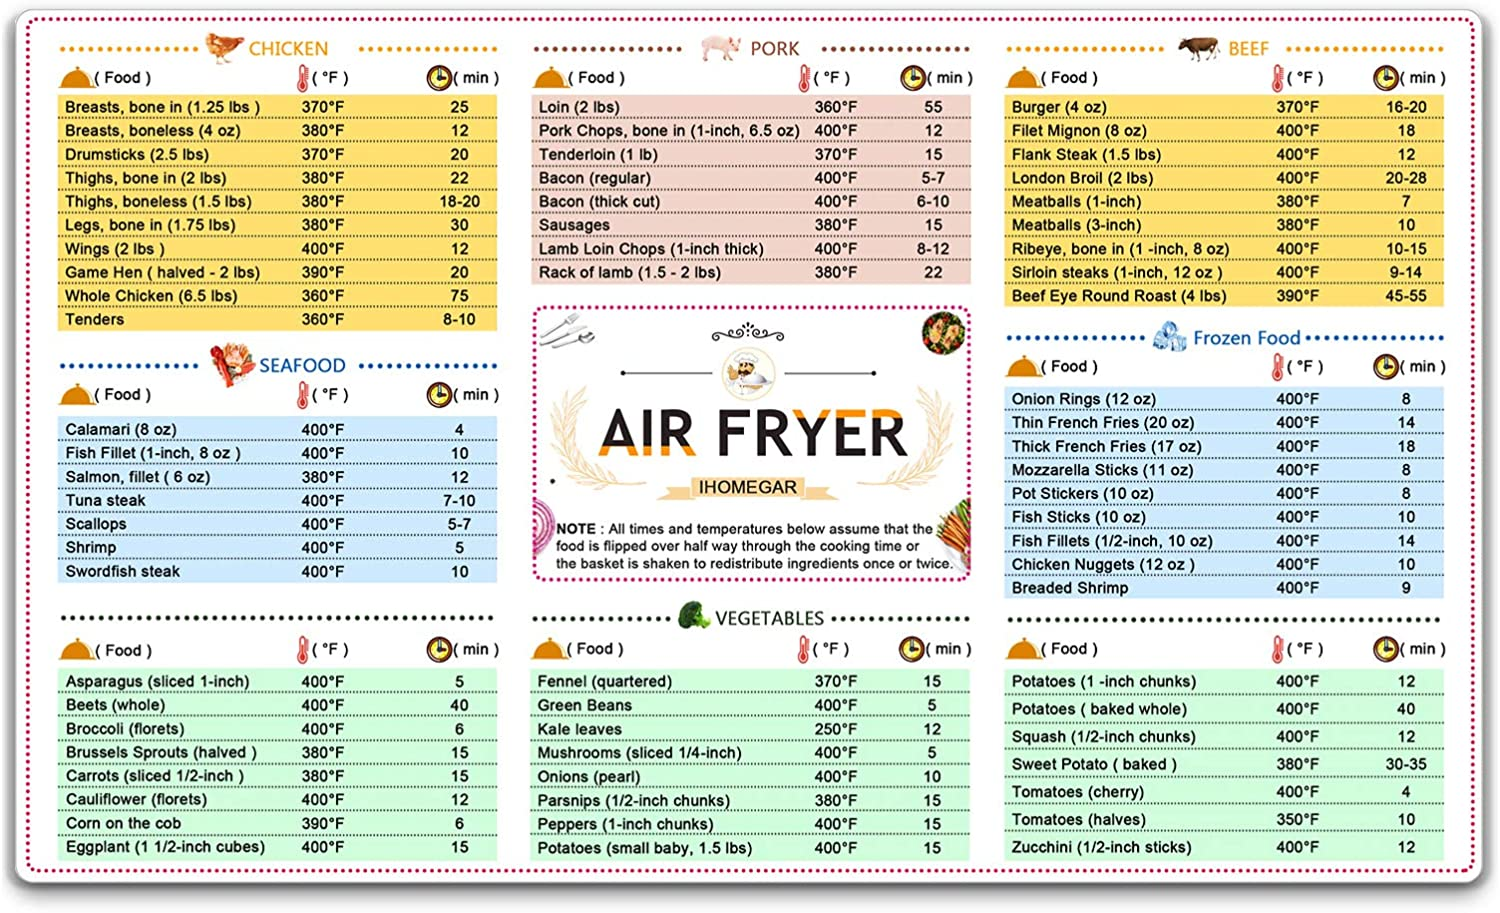 Air Fryer Magnetic Cheat Sheet, Cooker Accessories Cookbook, Magnet Cooking Times and Temperatures Chart, Quick Reference Recipe Card, Kitchen Useful Guide Cookbook with 66 Common Prep Functions x2